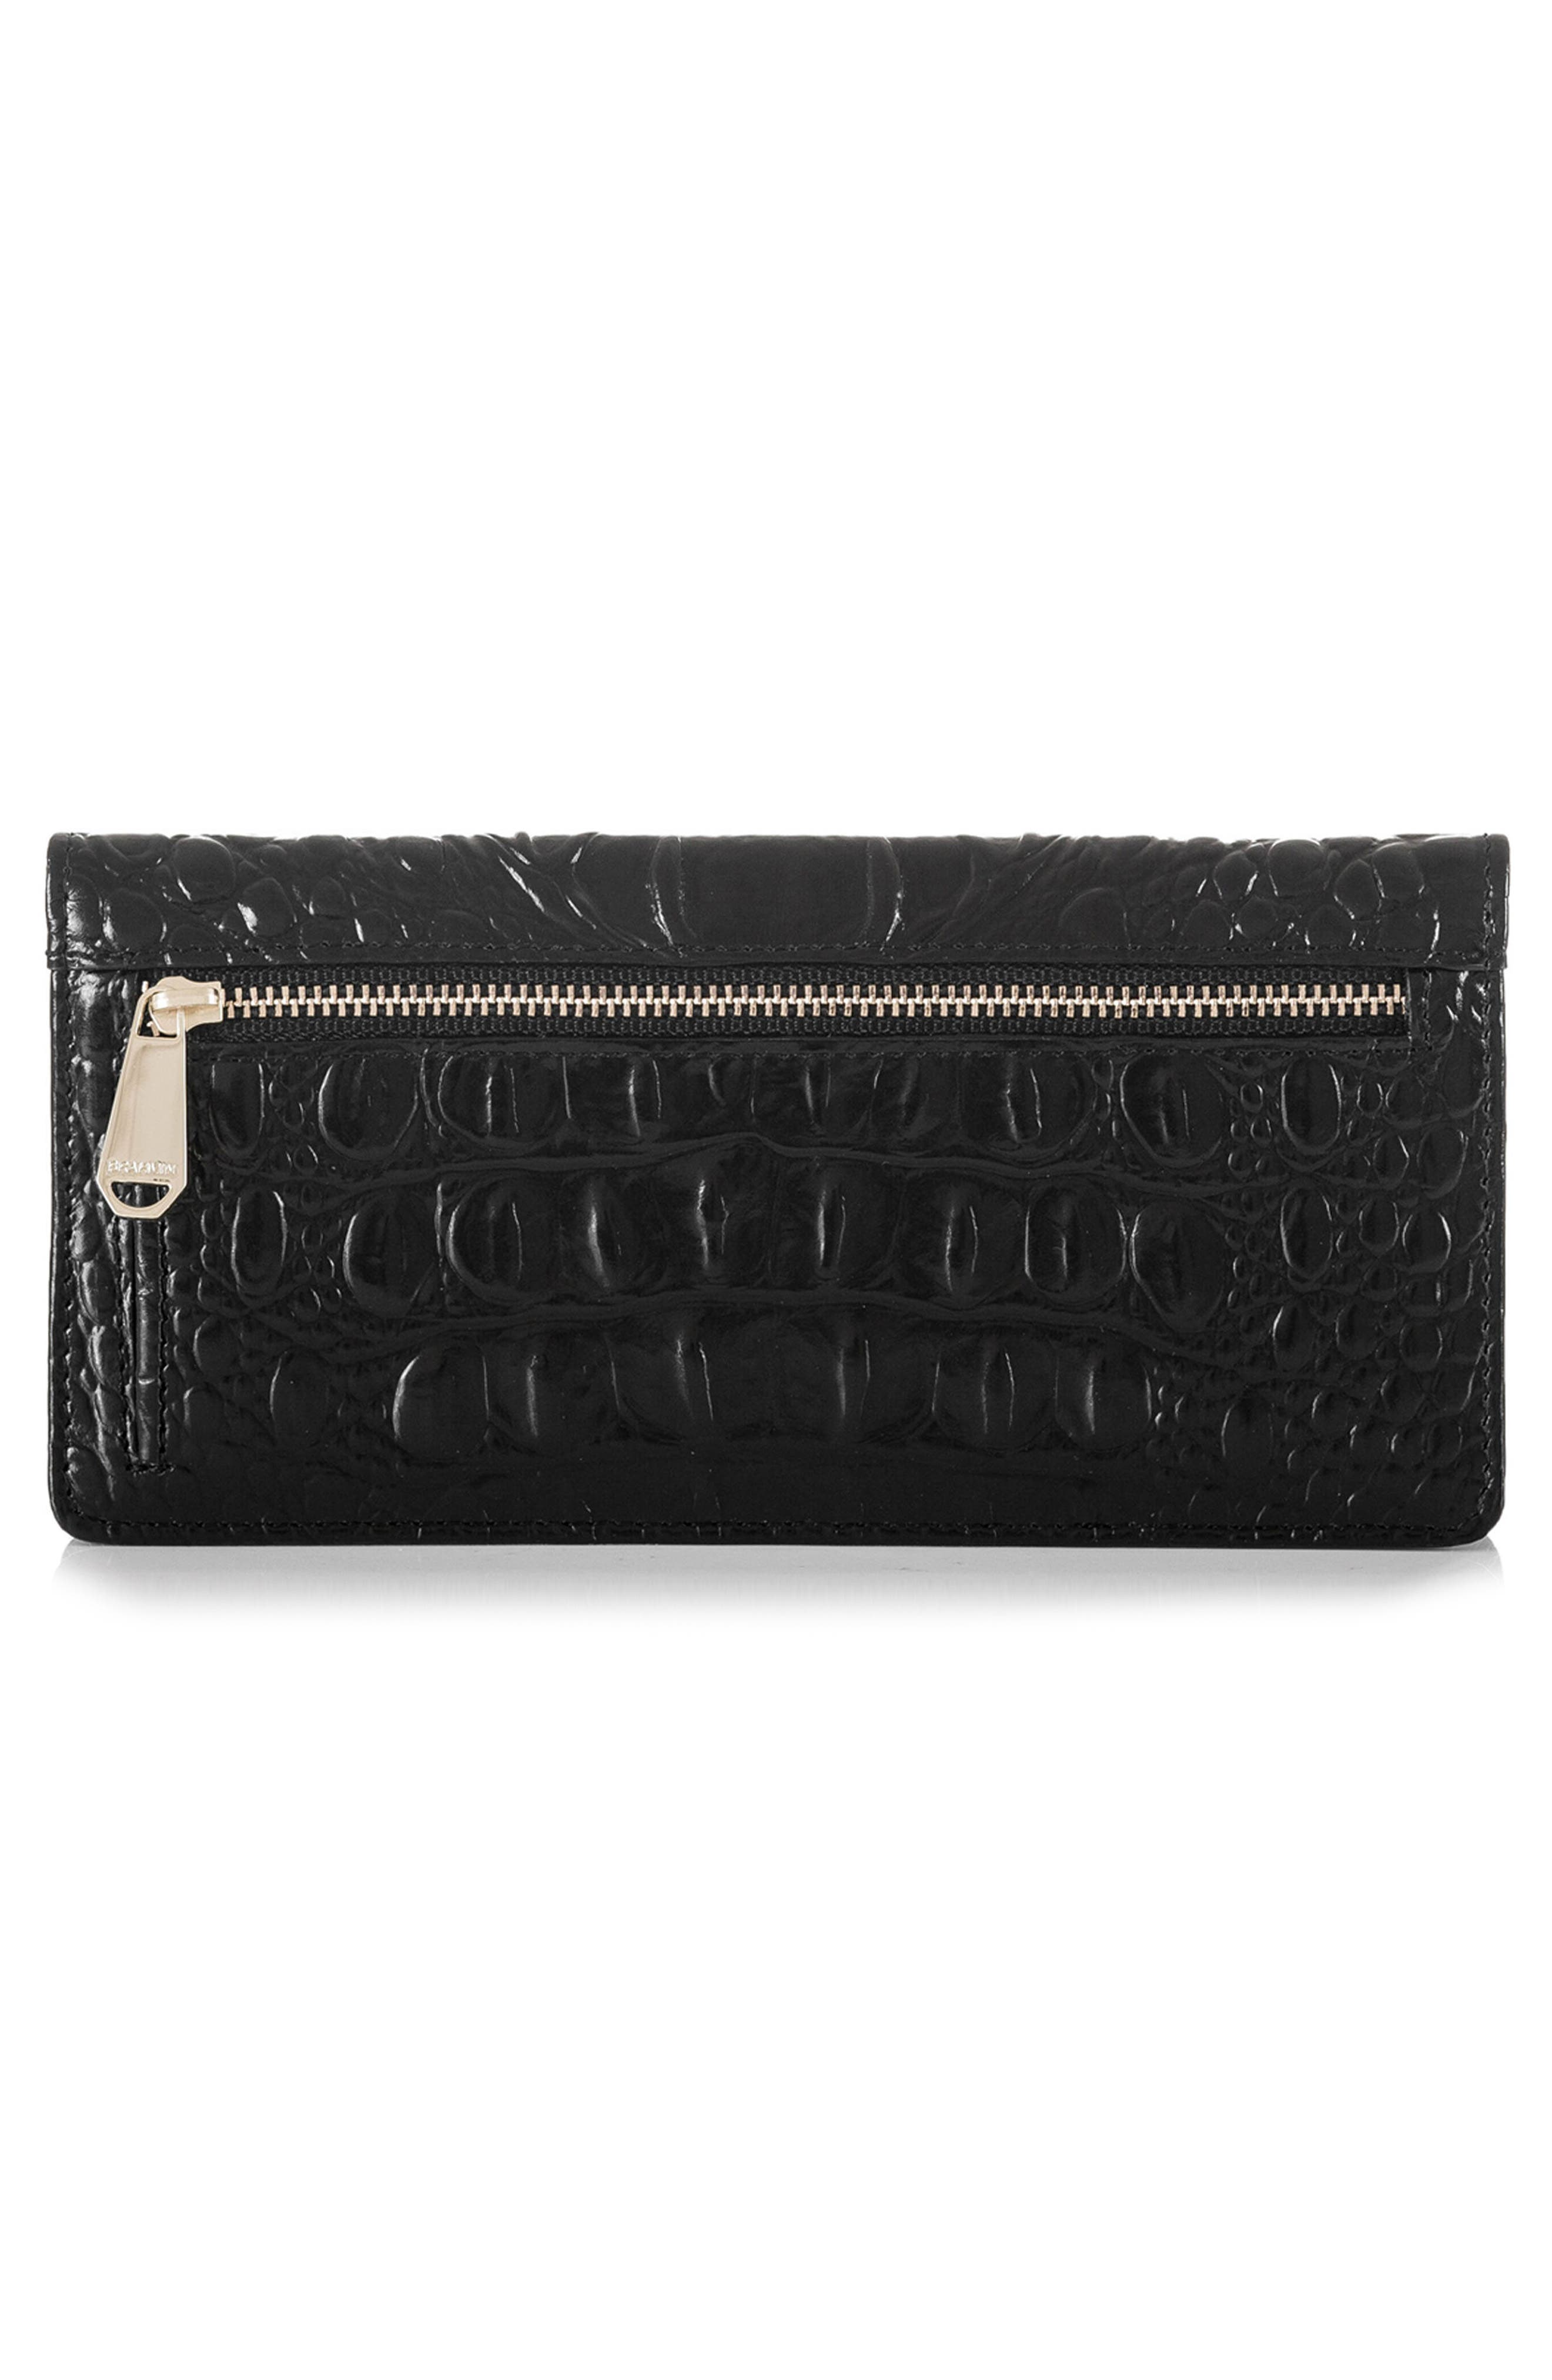 'Ady' Croc Embossed Continental Wallet,                             Alternate thumbnail 3, color,                             BLACK